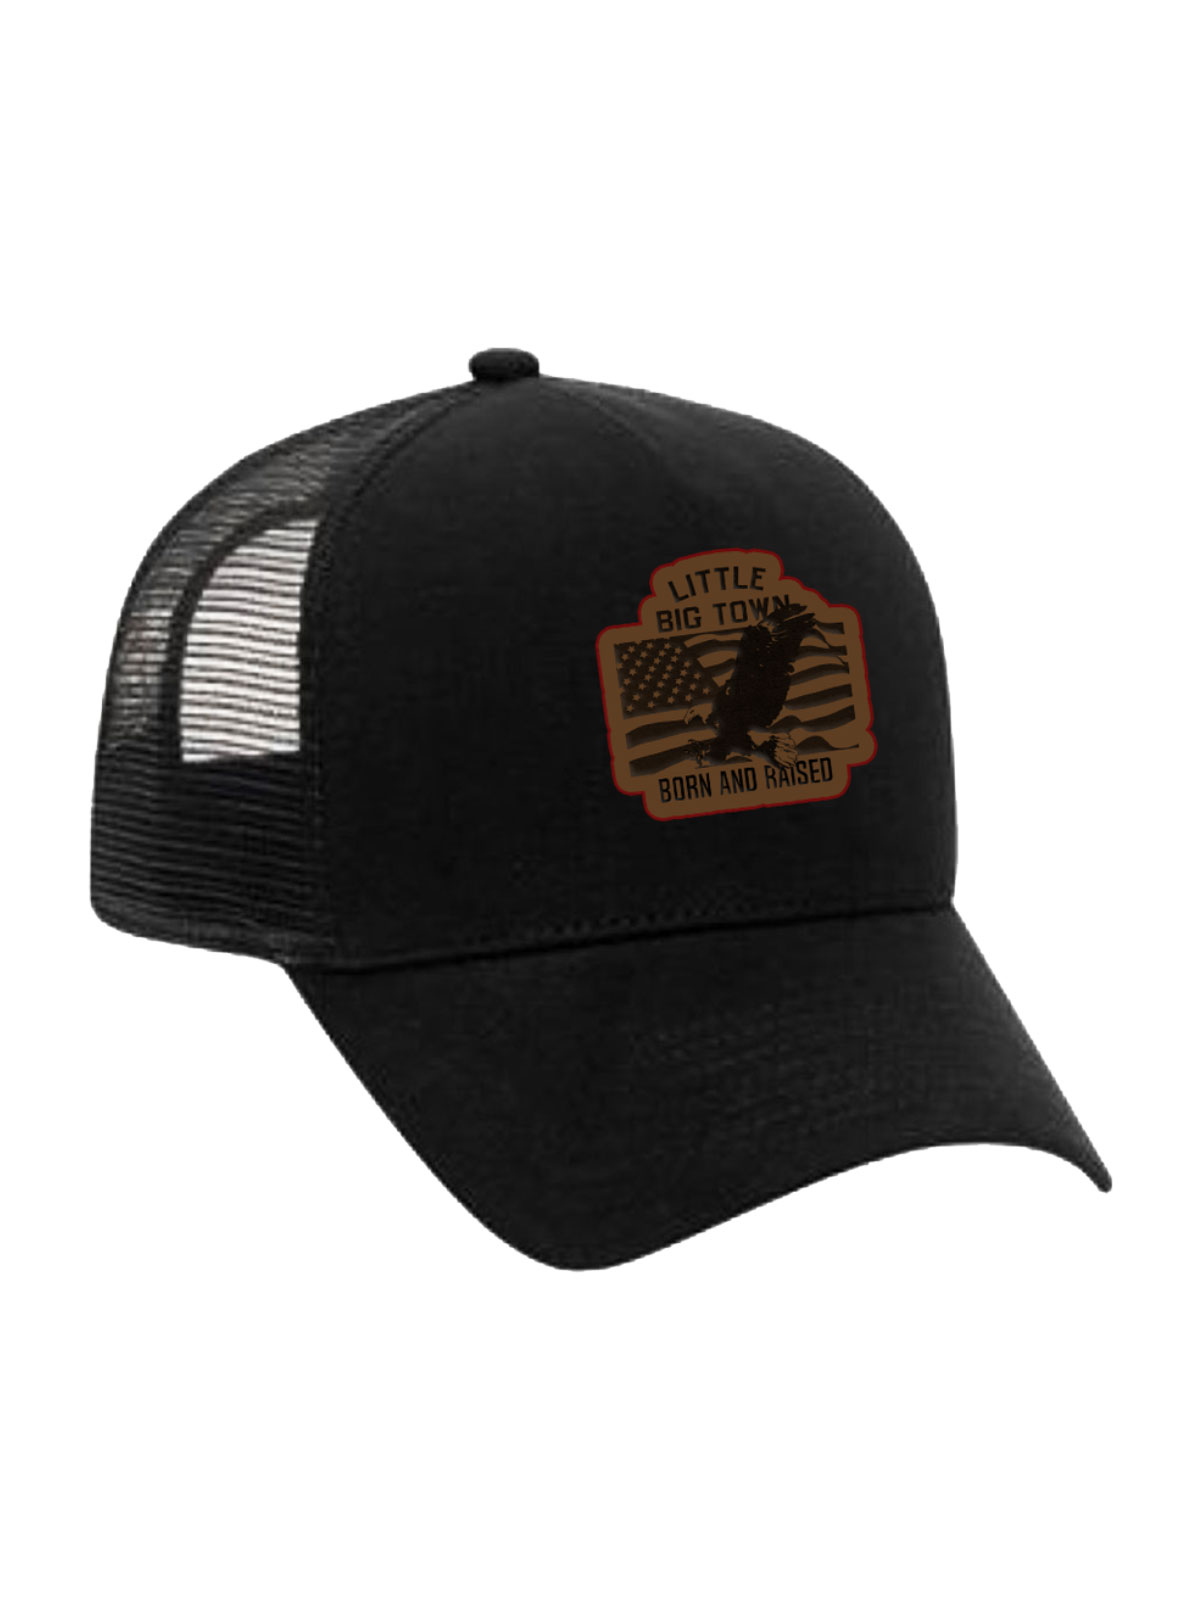 Born and Raised Black Trucker Hat